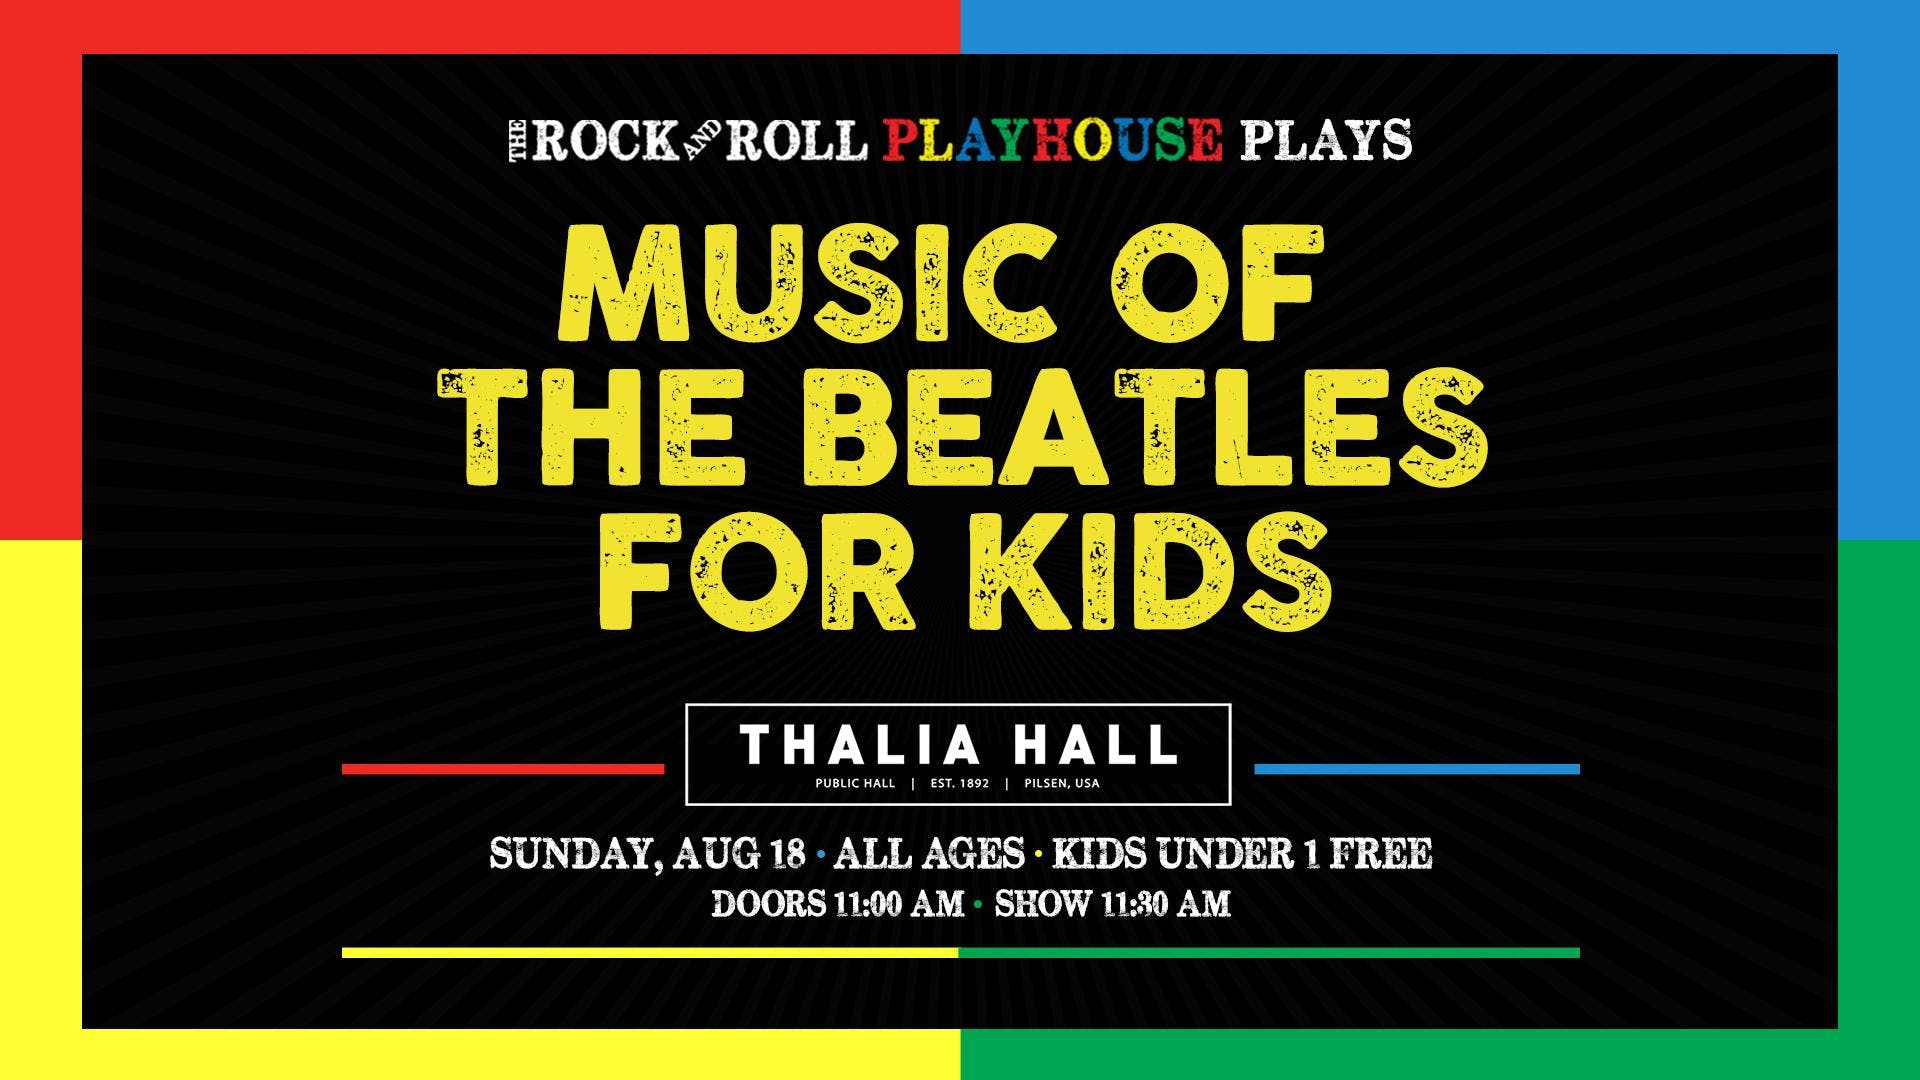 The Rock and Roll Playhouse presents: The Music of The Beatles for Kids